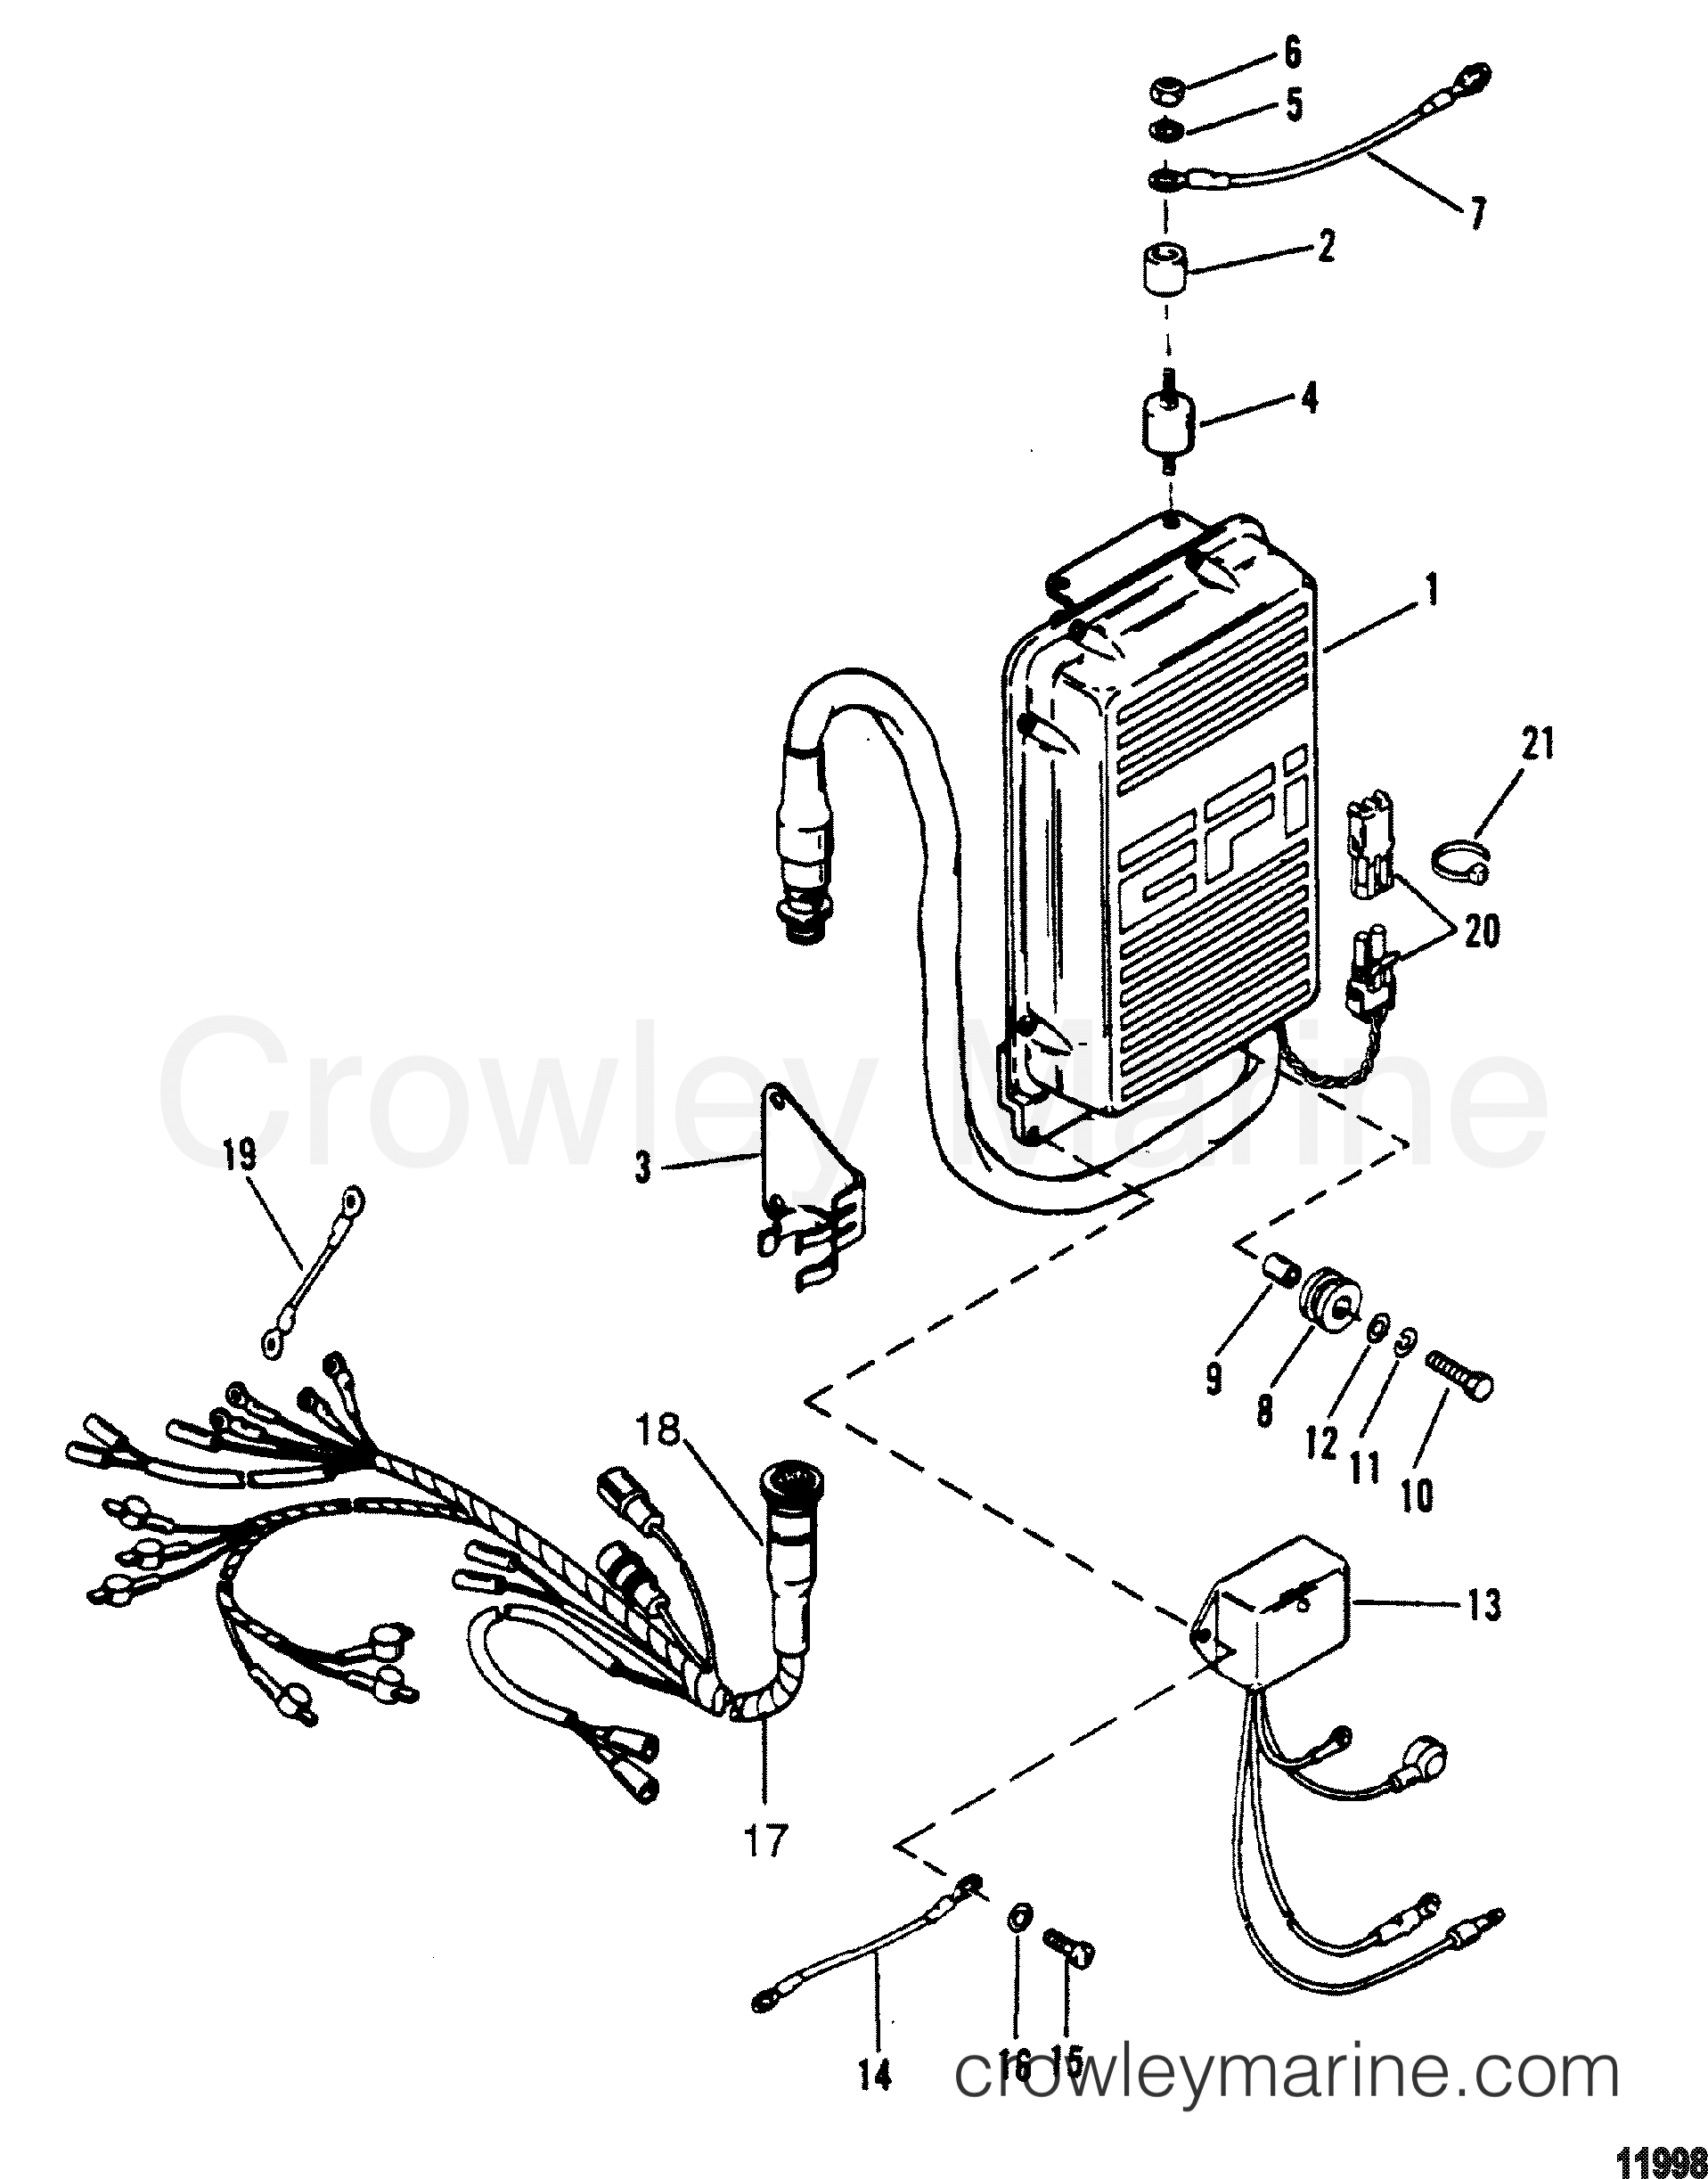 electronic control unit assembly